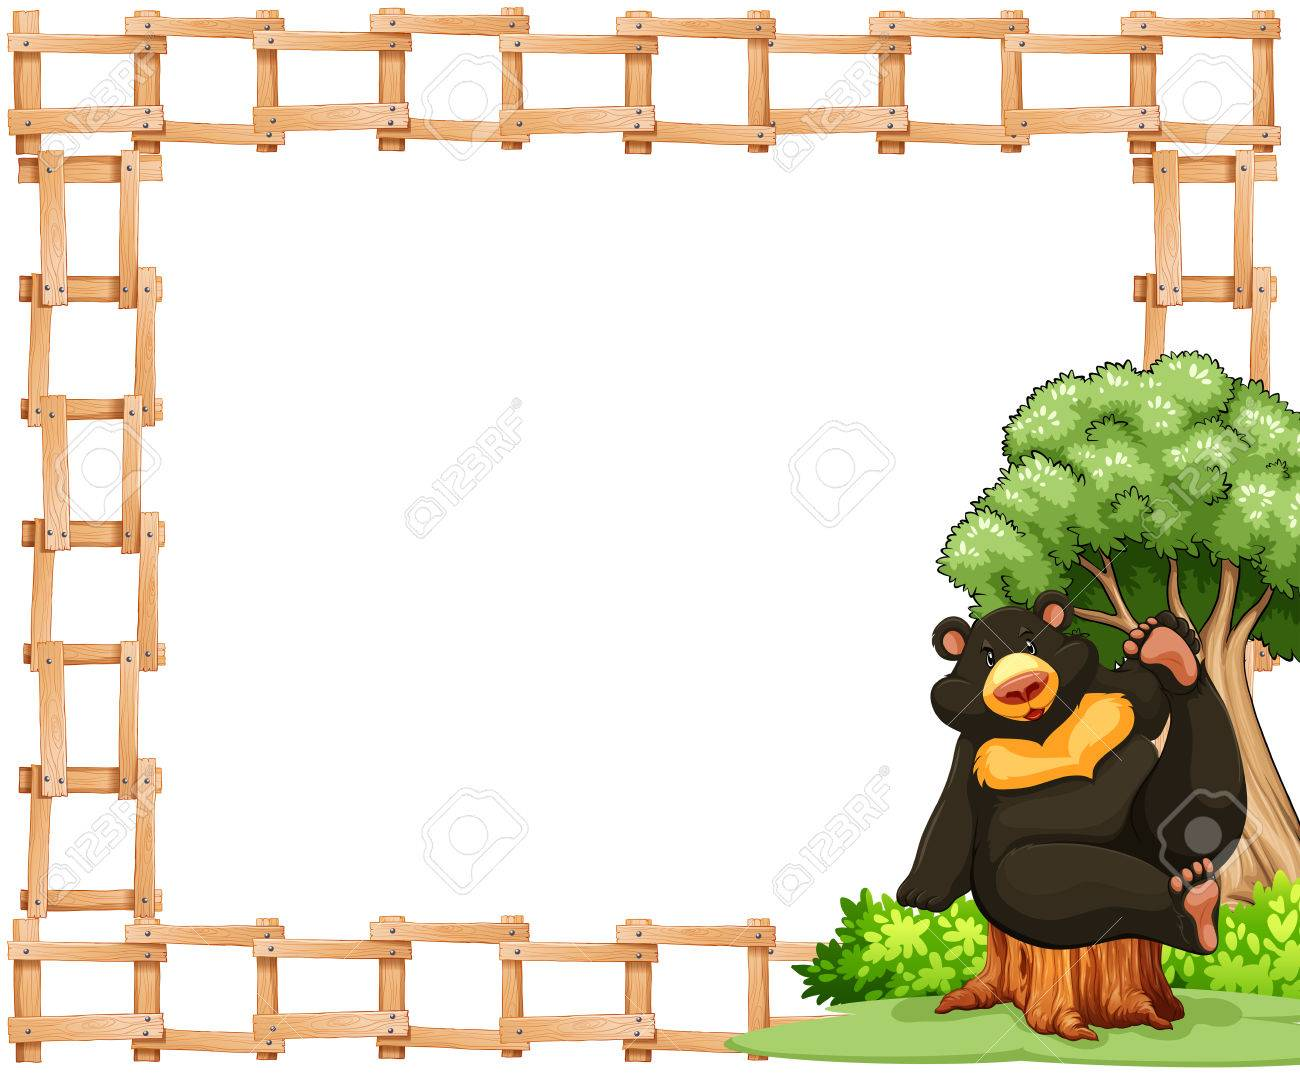 White Poster With Fence And Bear Frame Royalty Free Cliparts